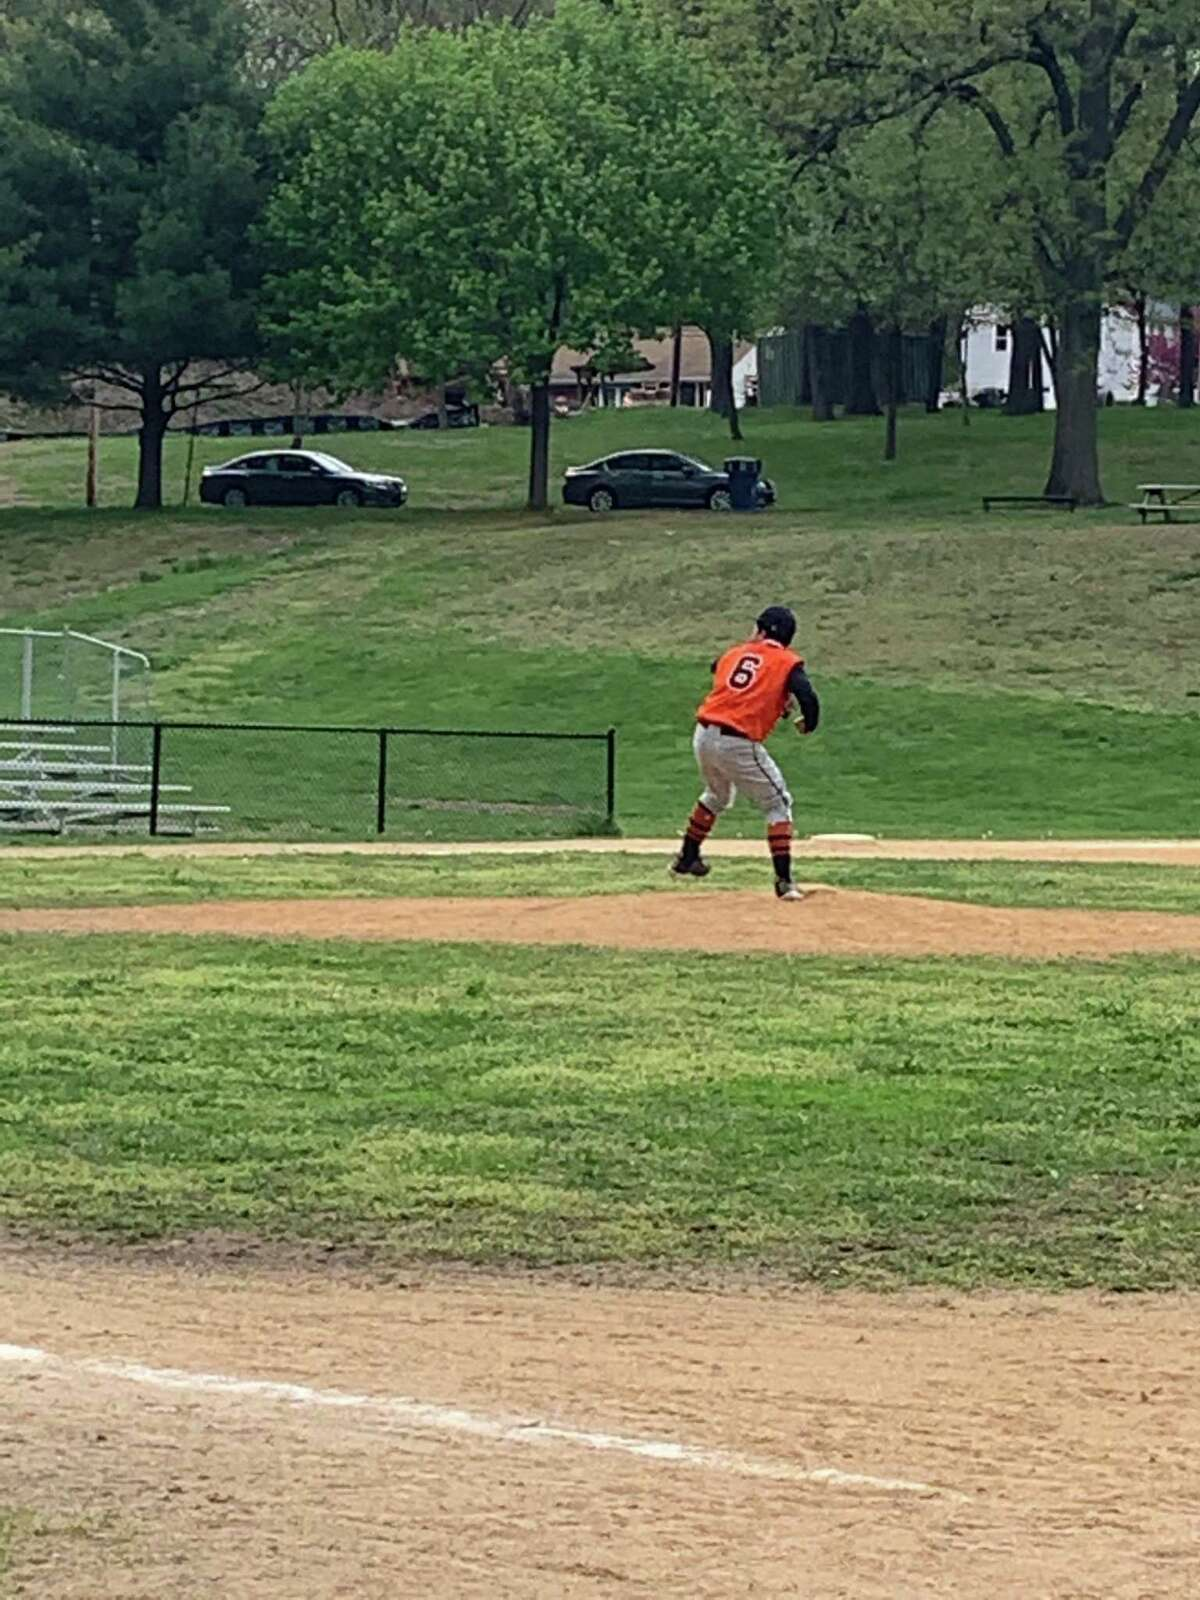 Freshman Raymond Morales pitched a perfect game for Bullard-Havens on Monday, May 3, 2021, at Beardsley Park in Bridgeport, Conn. The Tigers defeated Vinal Tech 19-0 in five innings.